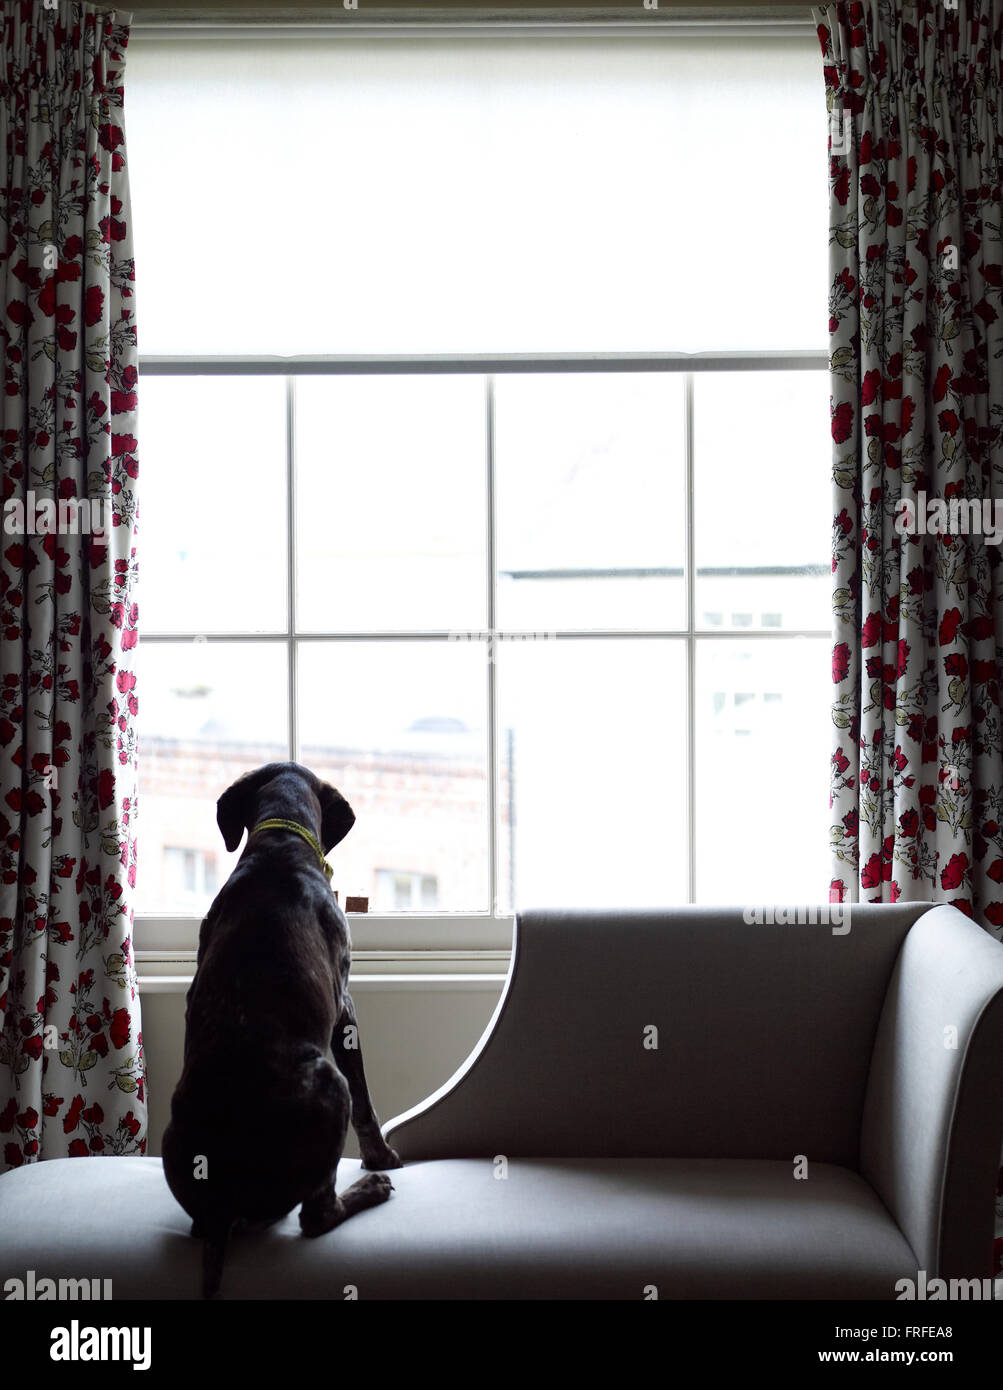 Dog looking out of window - Stock Image